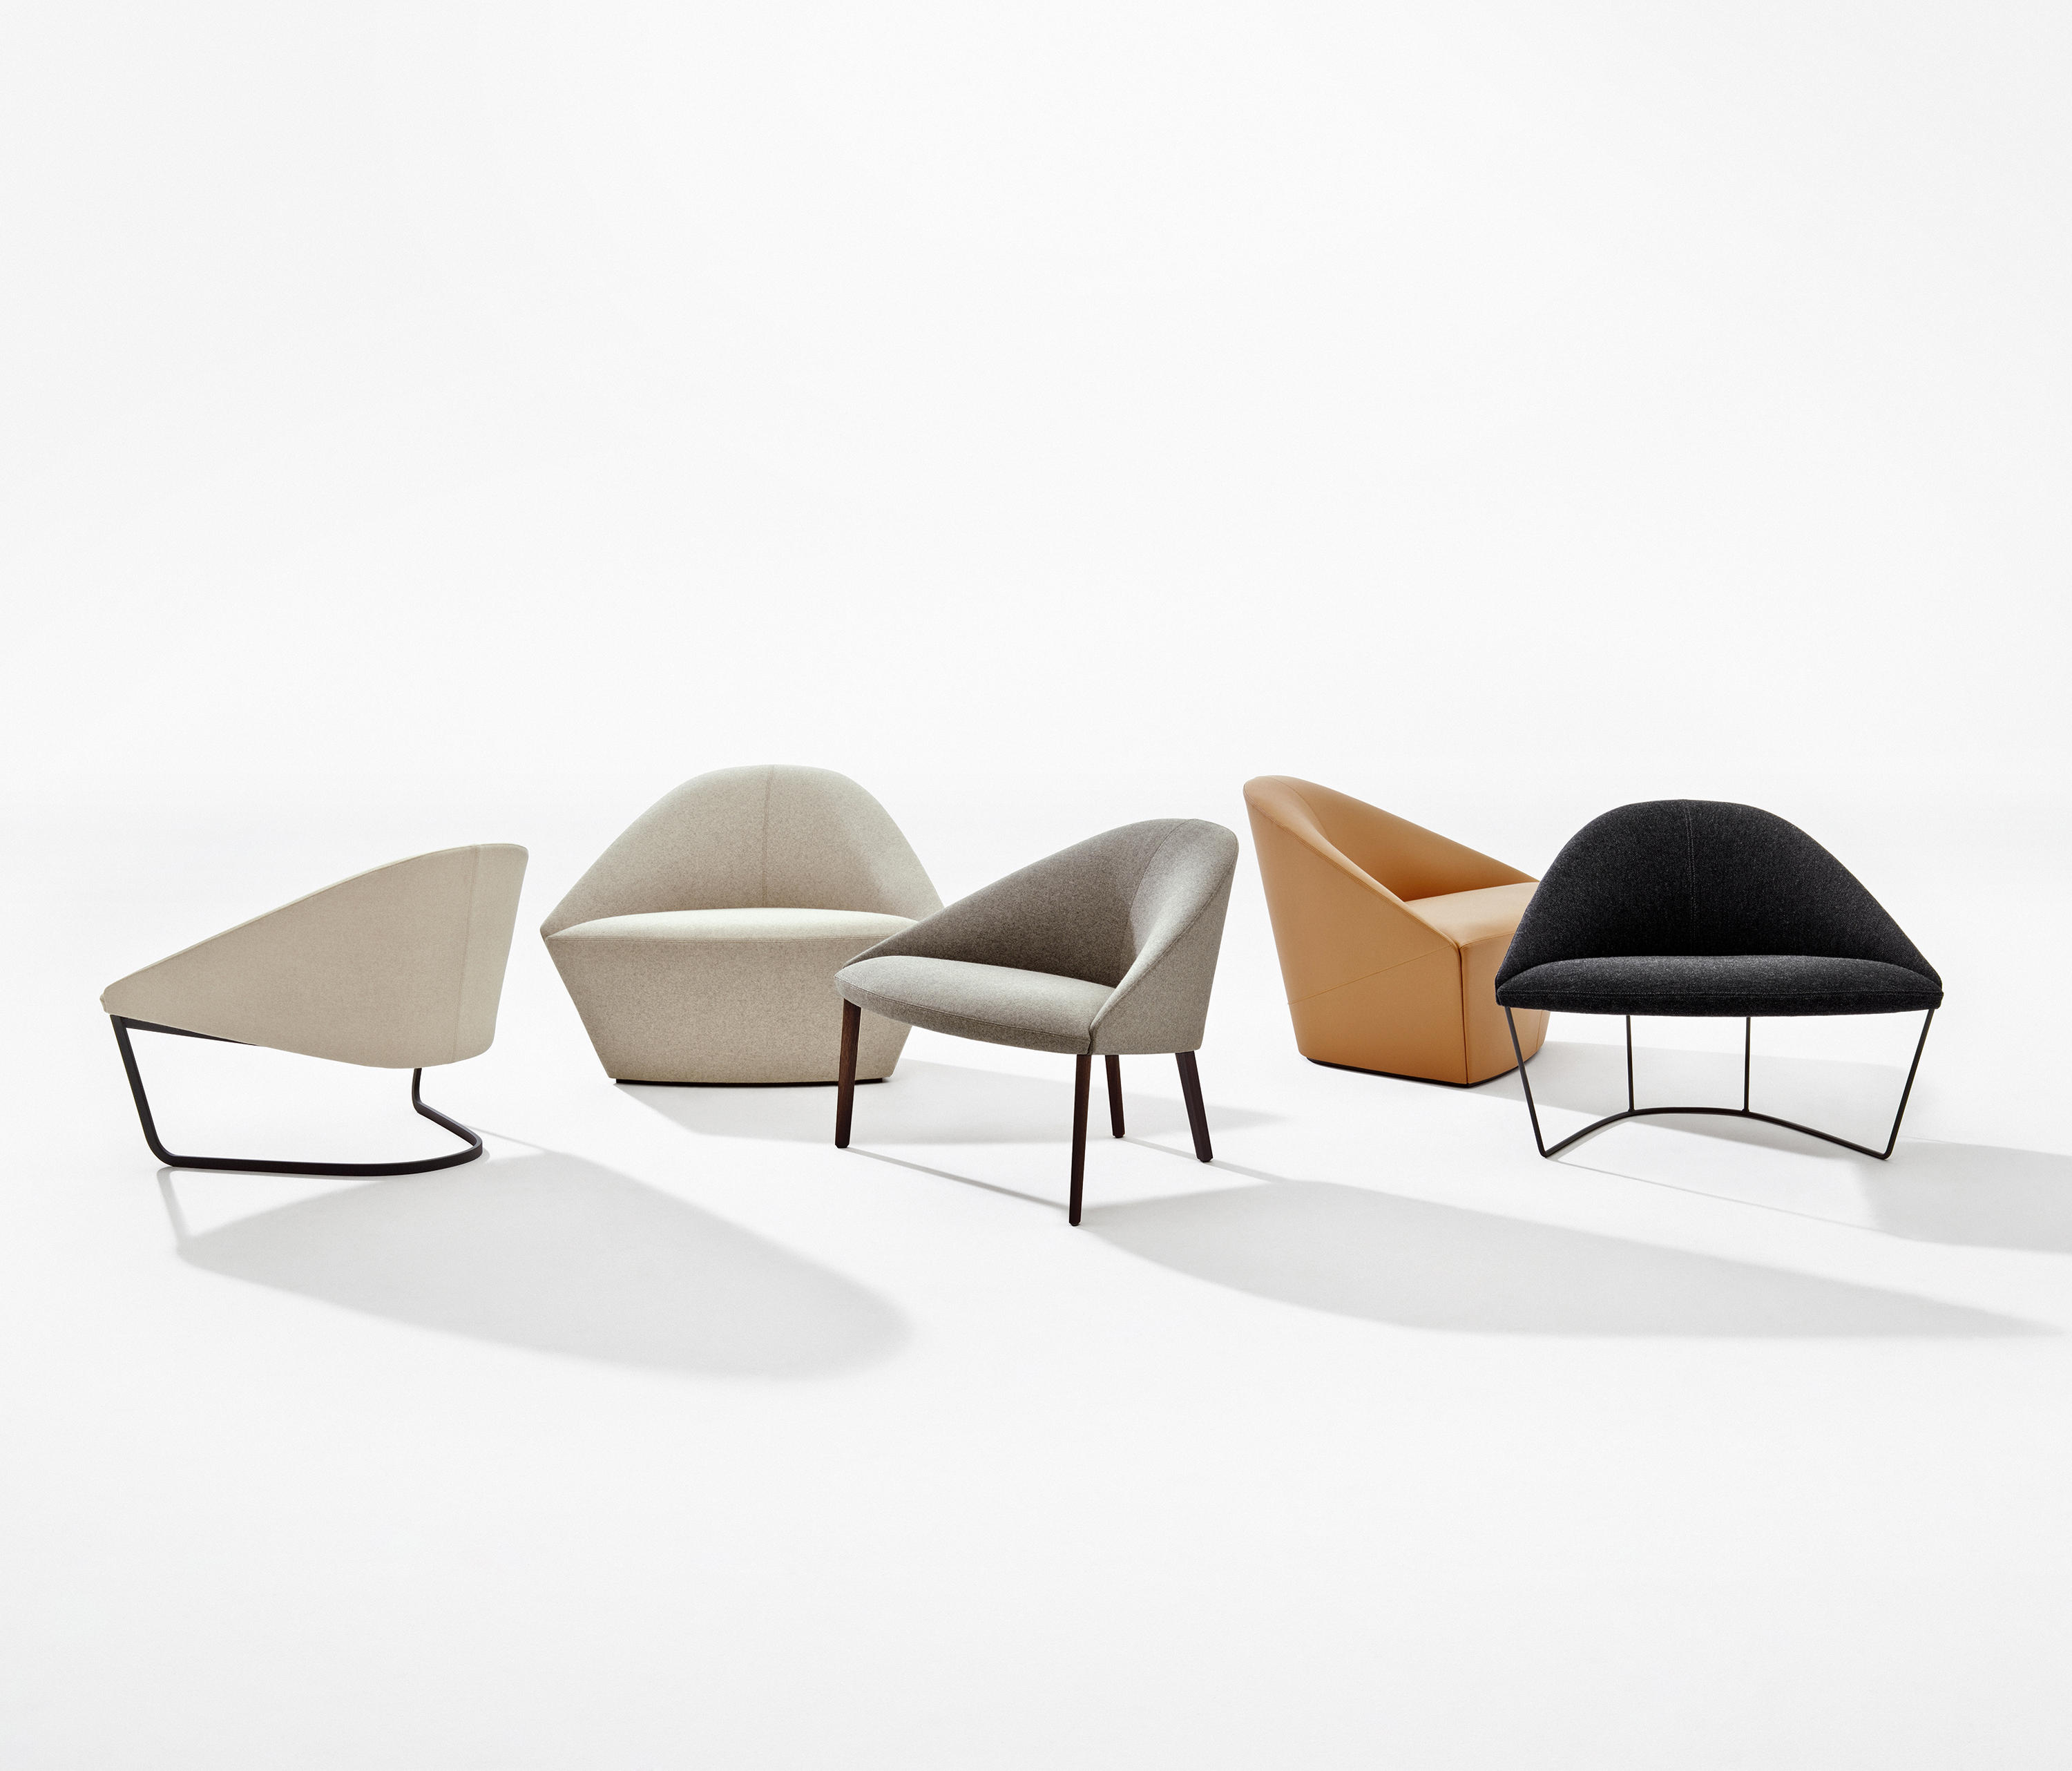 colina l  lounge chairs from arper  architonic - colina l by arper colina l by arper